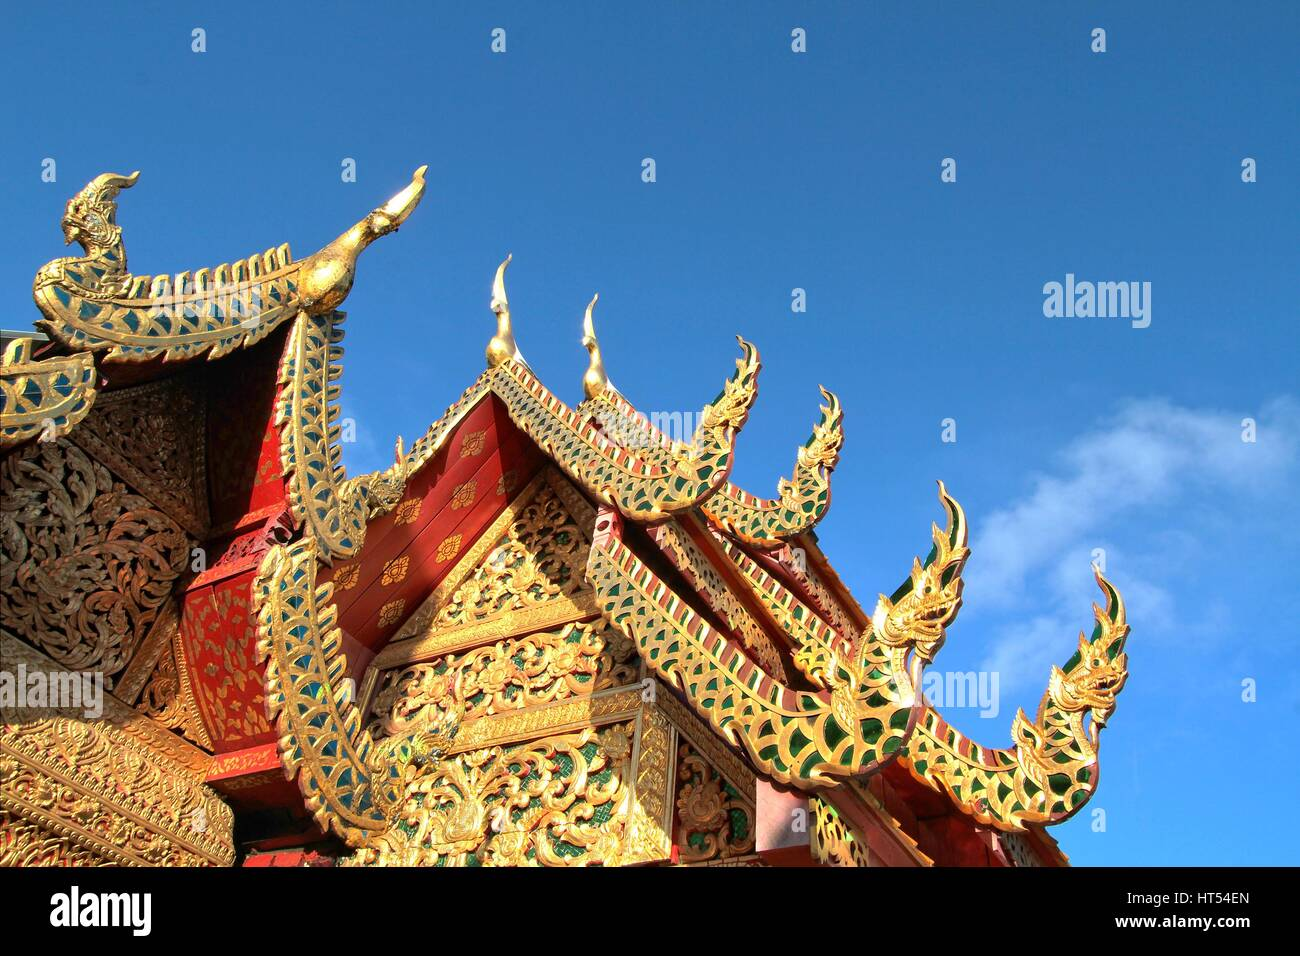 Details of northern style Thai temple roof against clear blue sky at Wat Phra That Doi Suthep, A famous Theravada - Stock Image